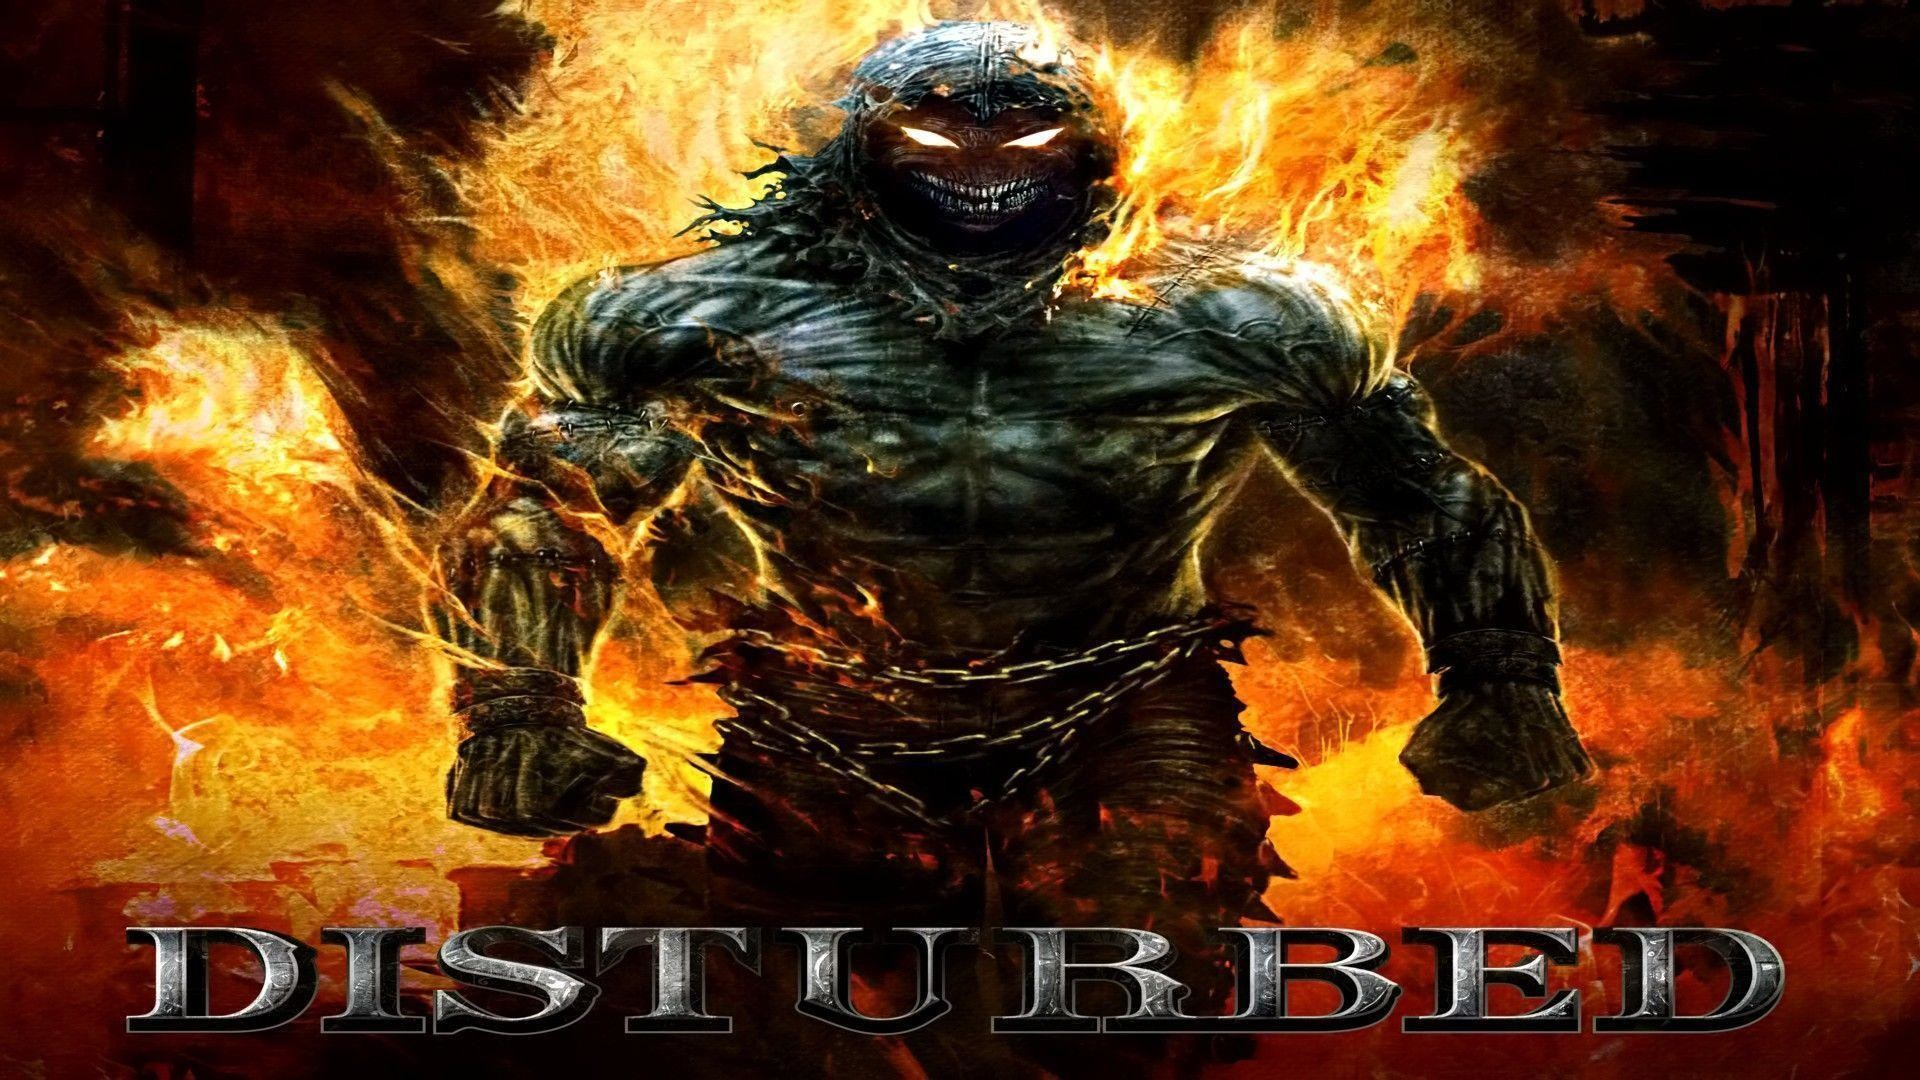 Images For > Disturbed The Guy Wallpaper Indestructible